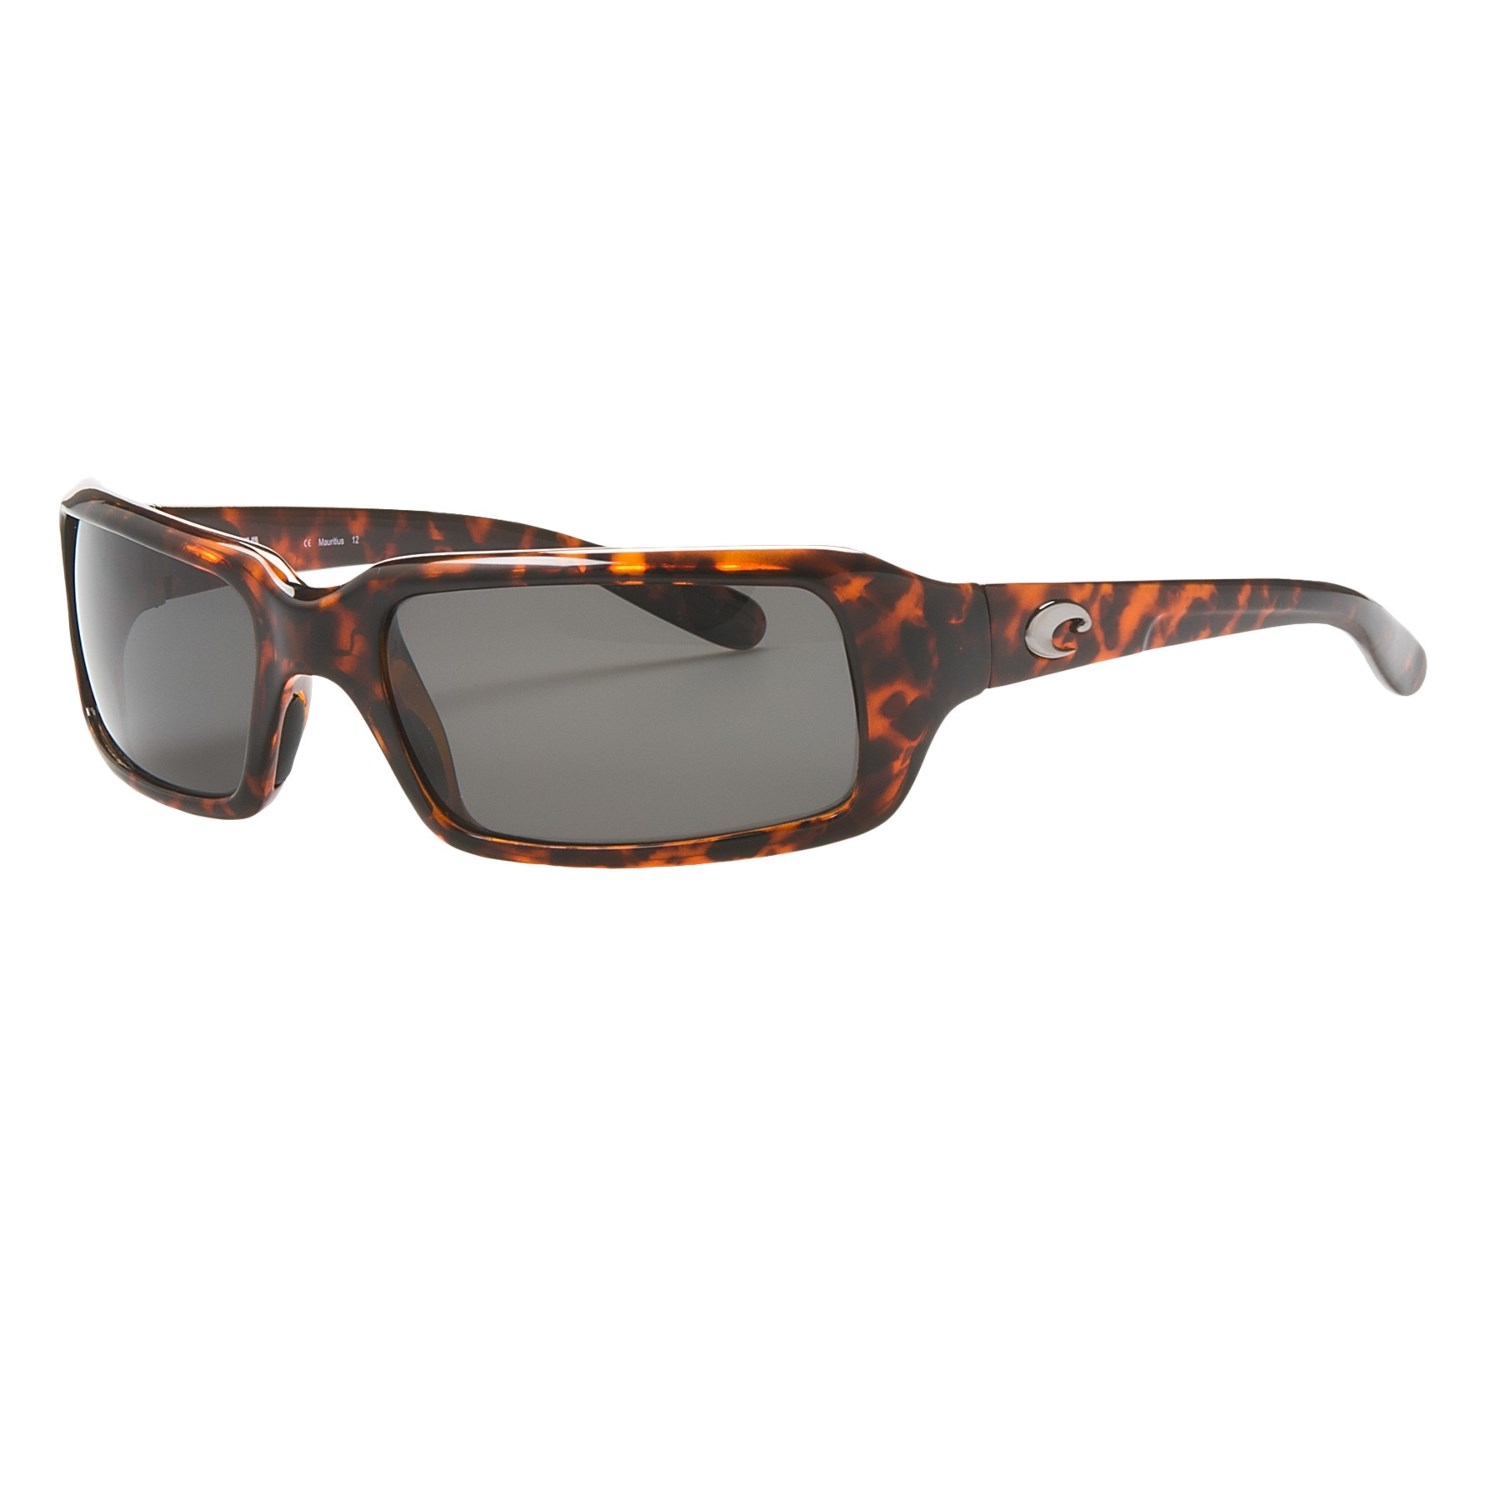 1e09b2cd96c82 Ray Ban Polarized Darker « Heritage Malta